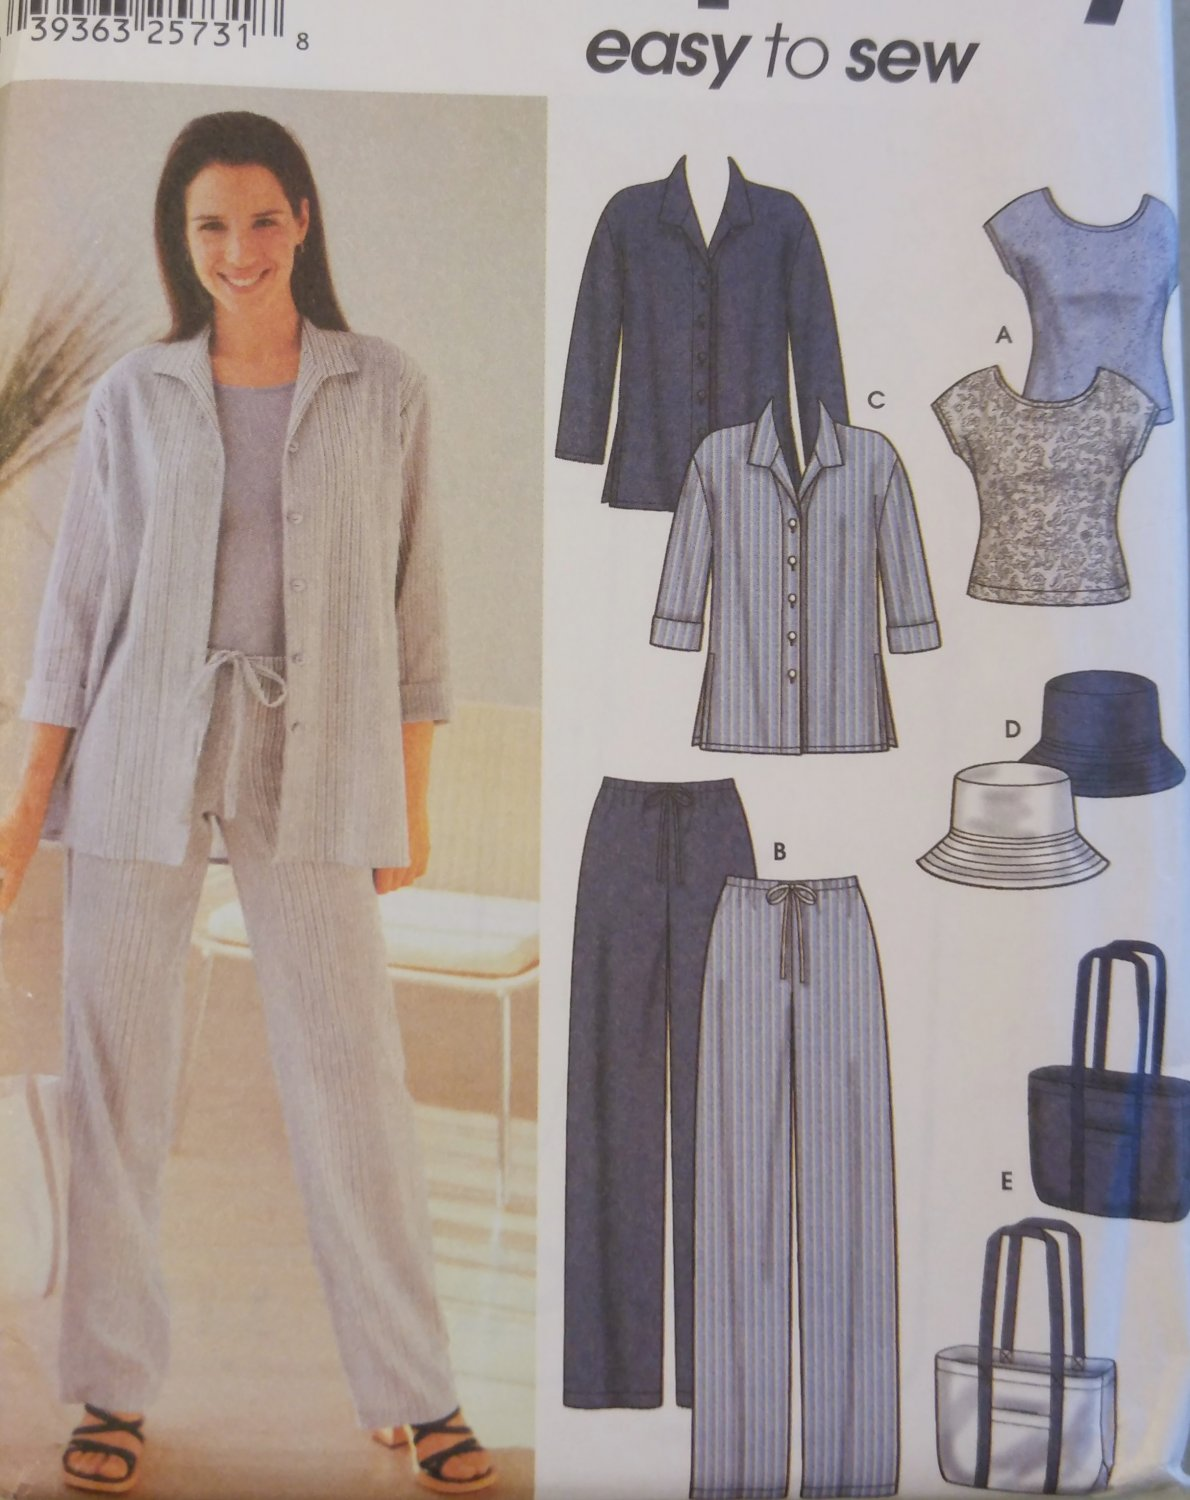 Misses Misses Pants, Shirt, Top, Hat & Bag Simplicity 7182 Pattern, Size 8 to 14, Uncut